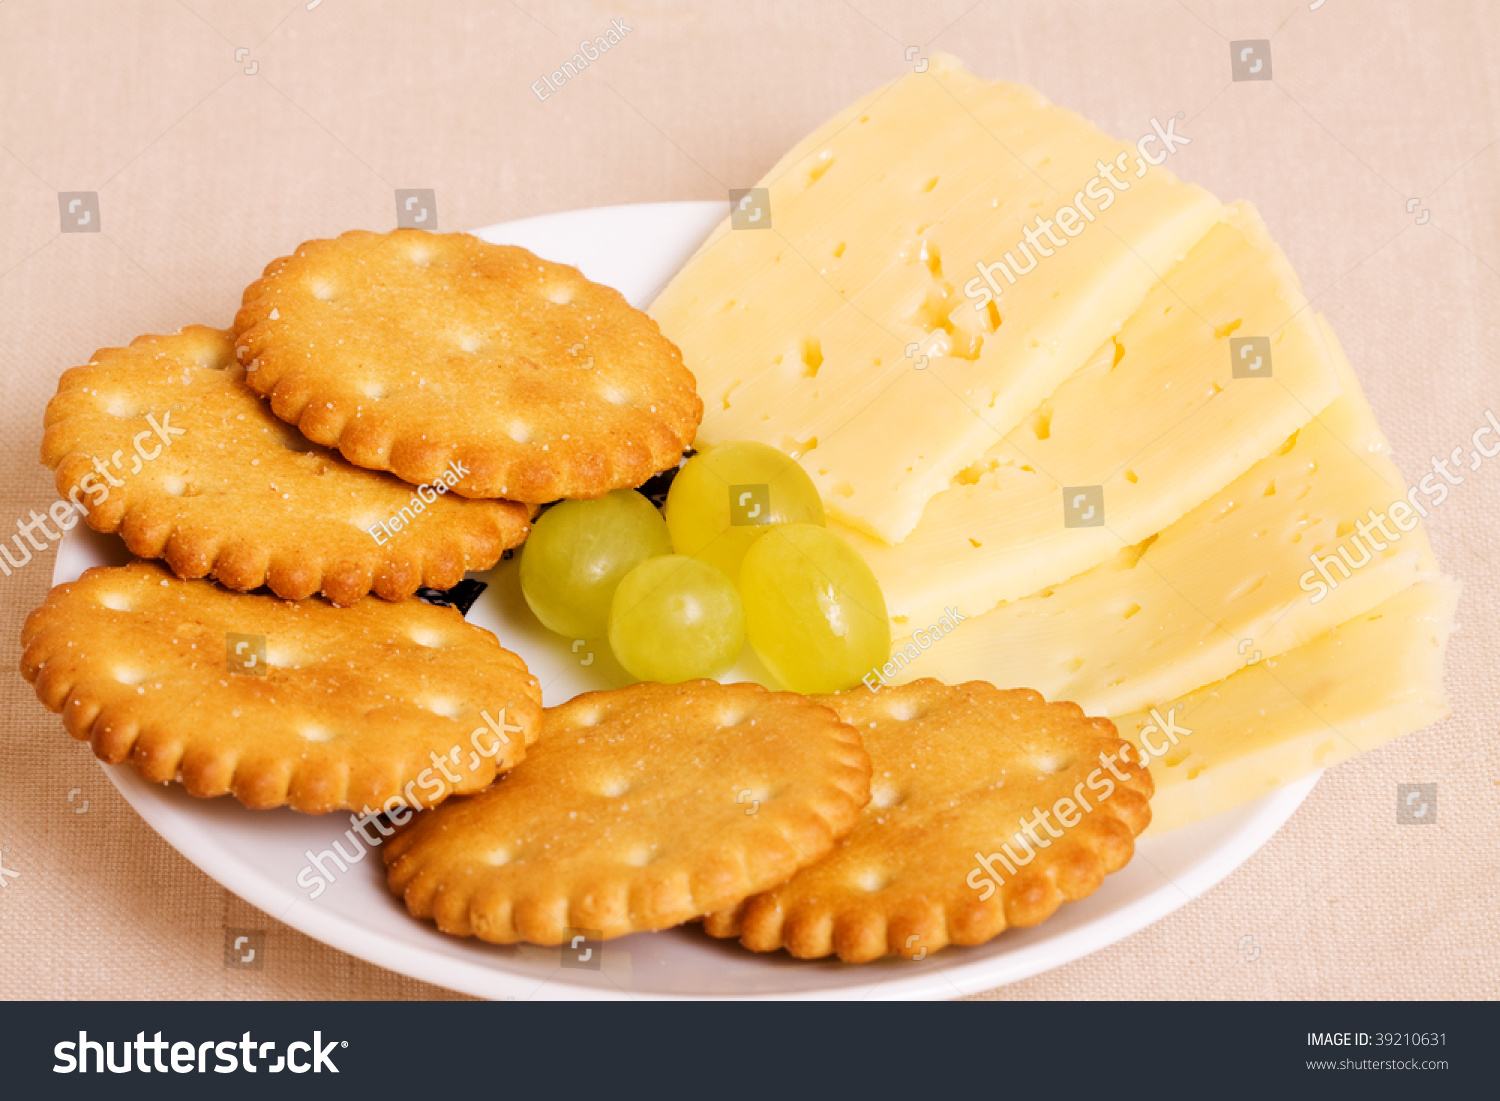 Cheese And Crackers On A Plate Stock Photo 39210631